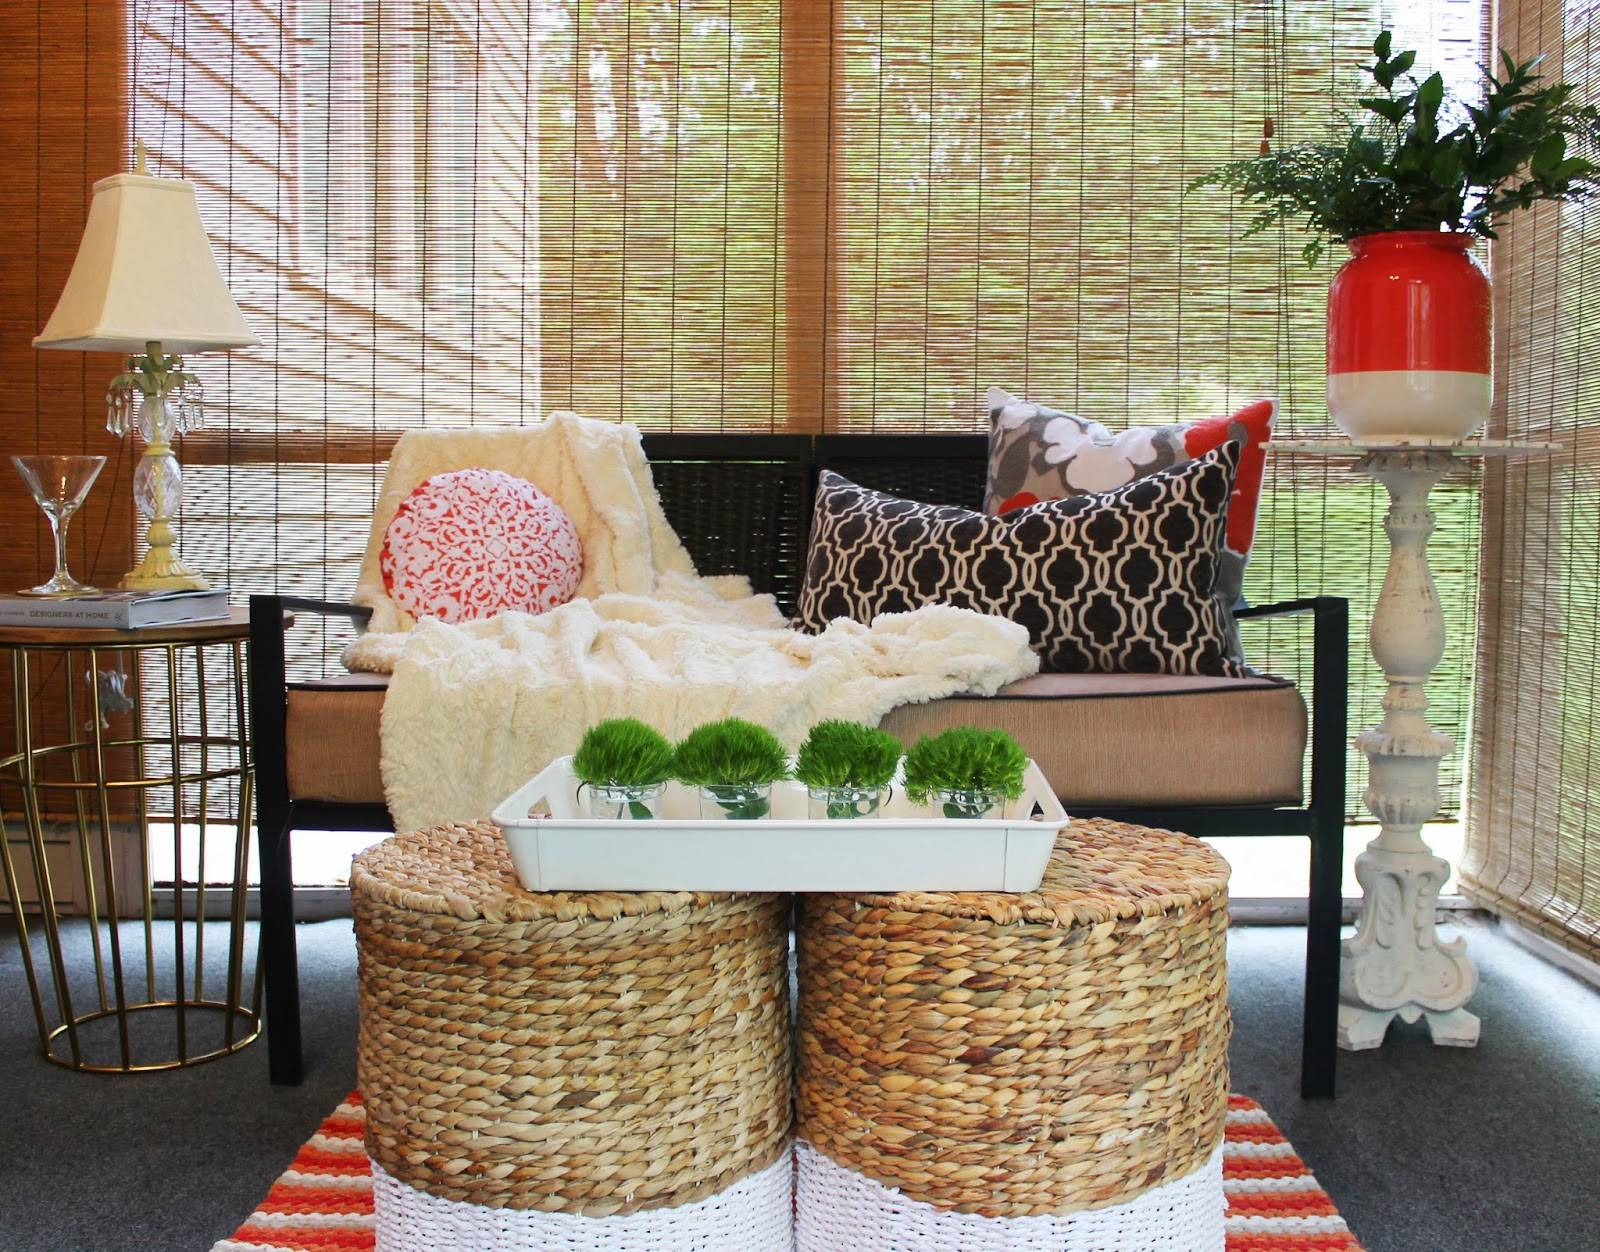 make it organize and decorative with baskets